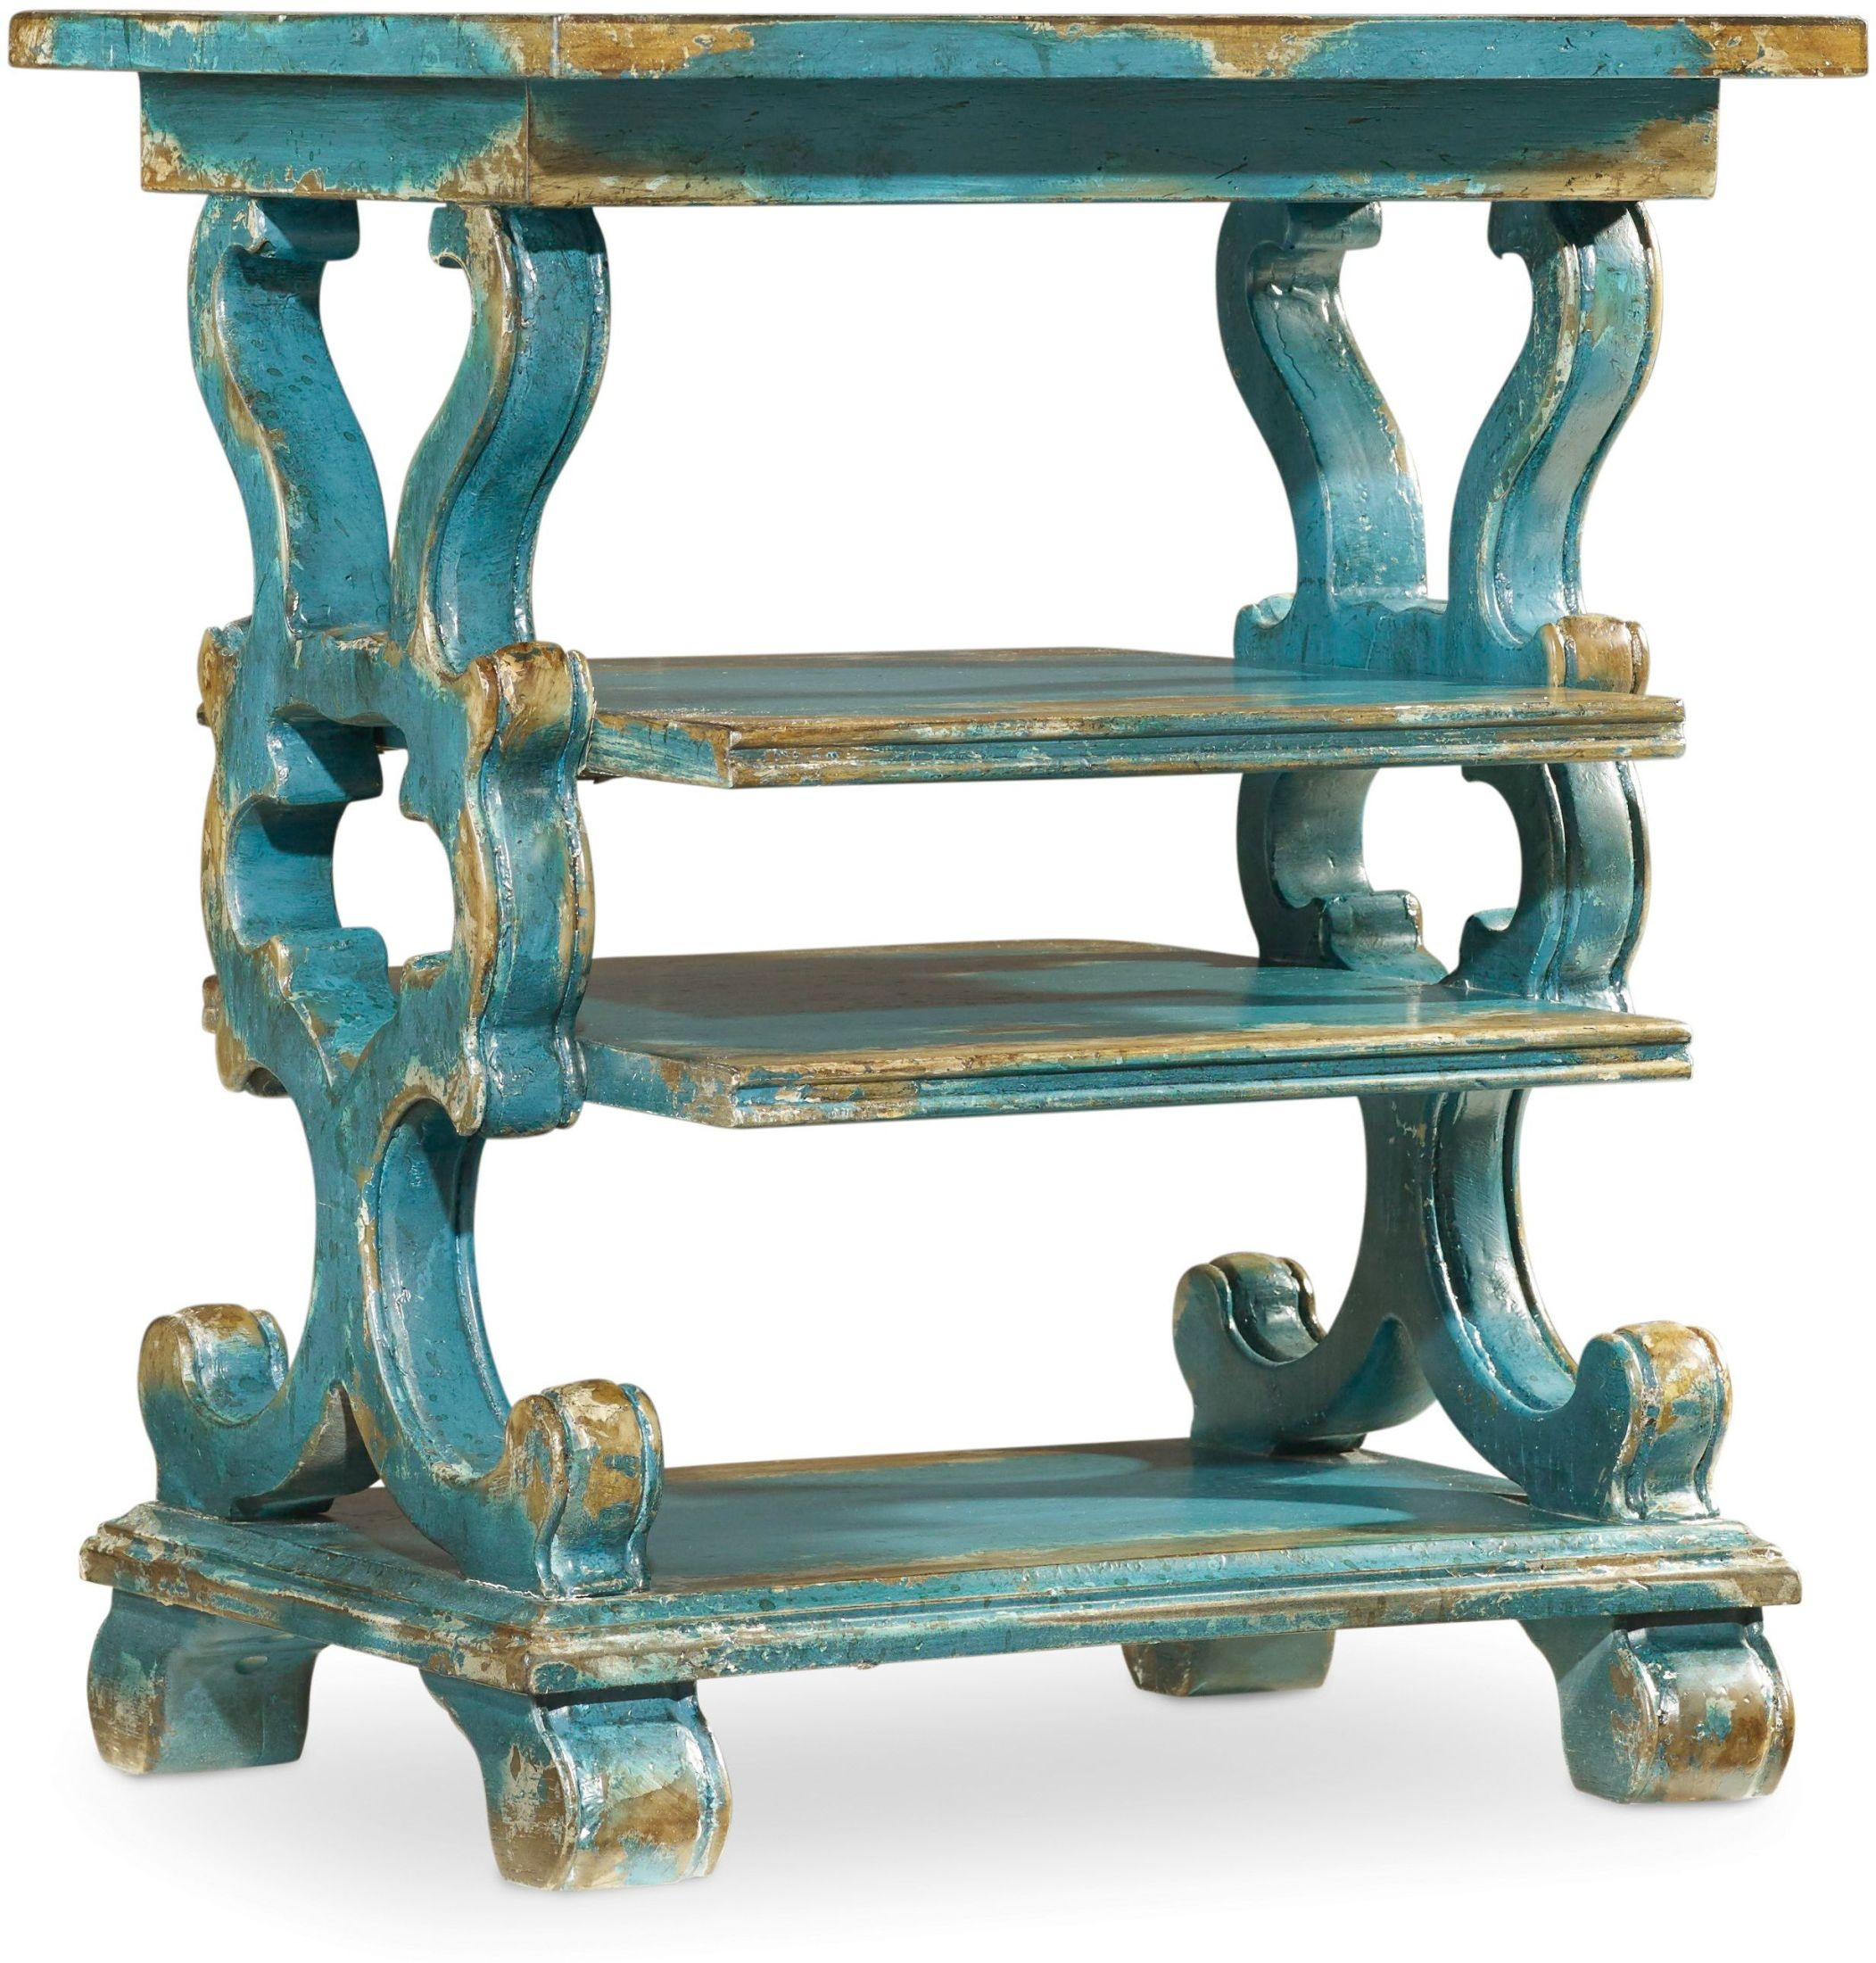 hooker sanctuary blue rectangular accent table eczhozcgforkpgkbbxjo fretwork oriental style lamps turquoise dresser hand painted tile patio outdoor furniture magazine side west